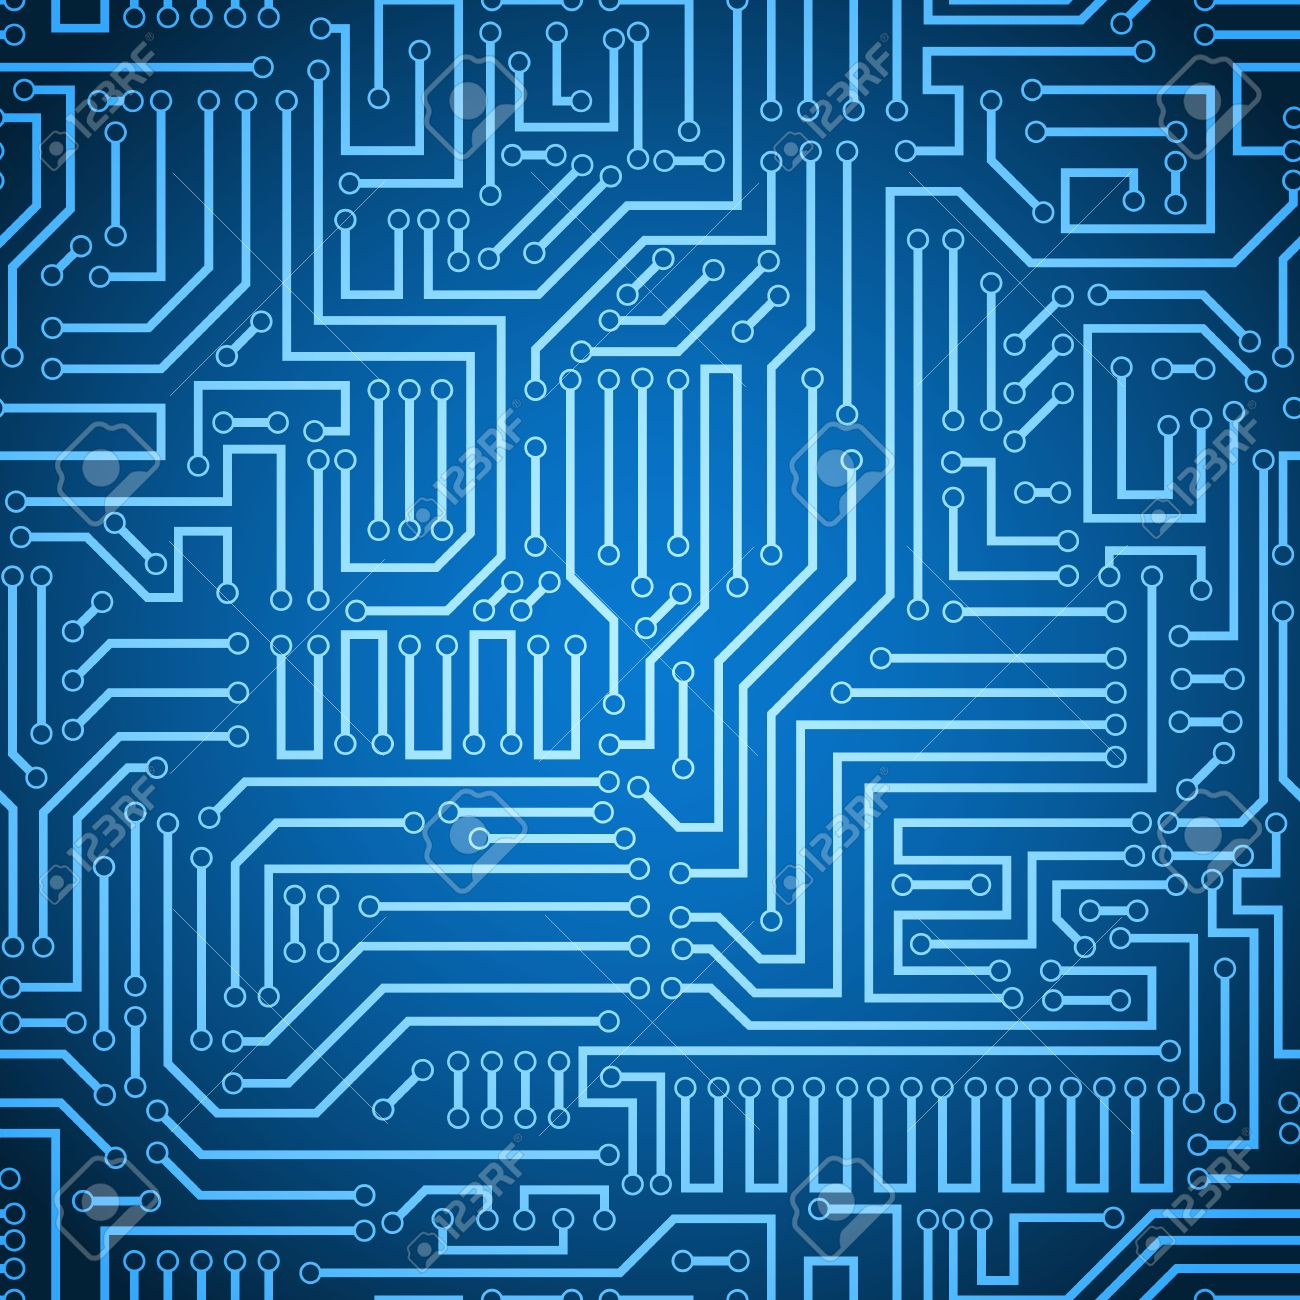 Blue Circuit Board Images Stock Photos Vectors Printed Electronics Vector Background Texture Seamless And Dark Electronic Plate Pattern